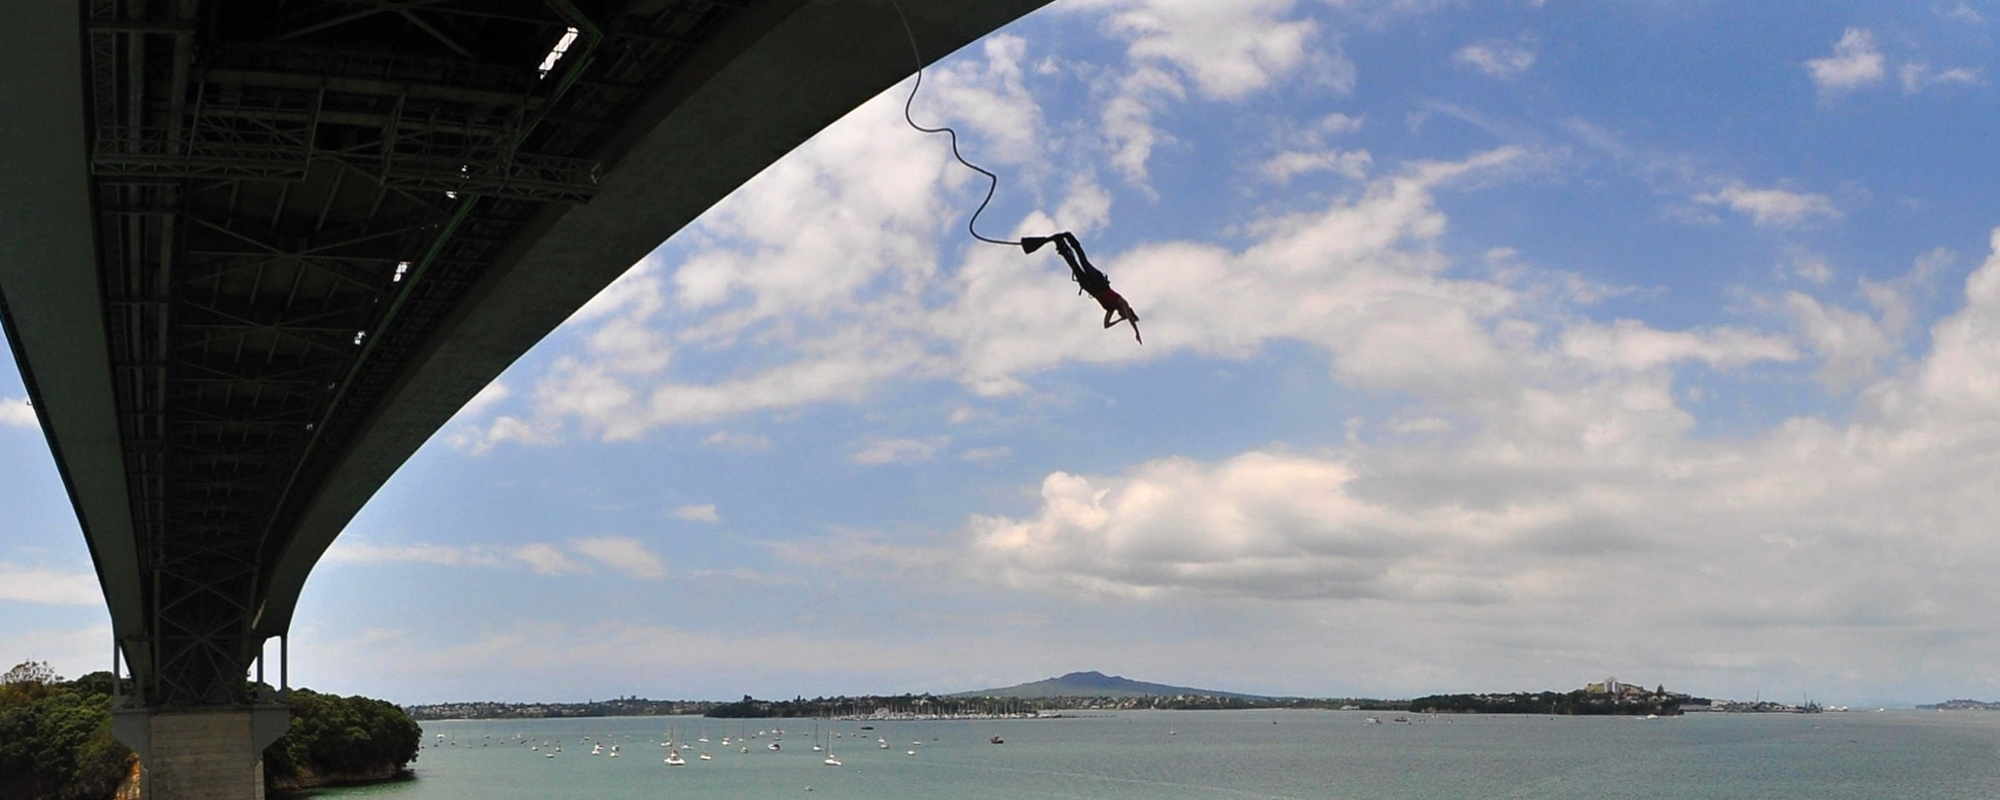 Auckland Bridge Bungy, New Zealand